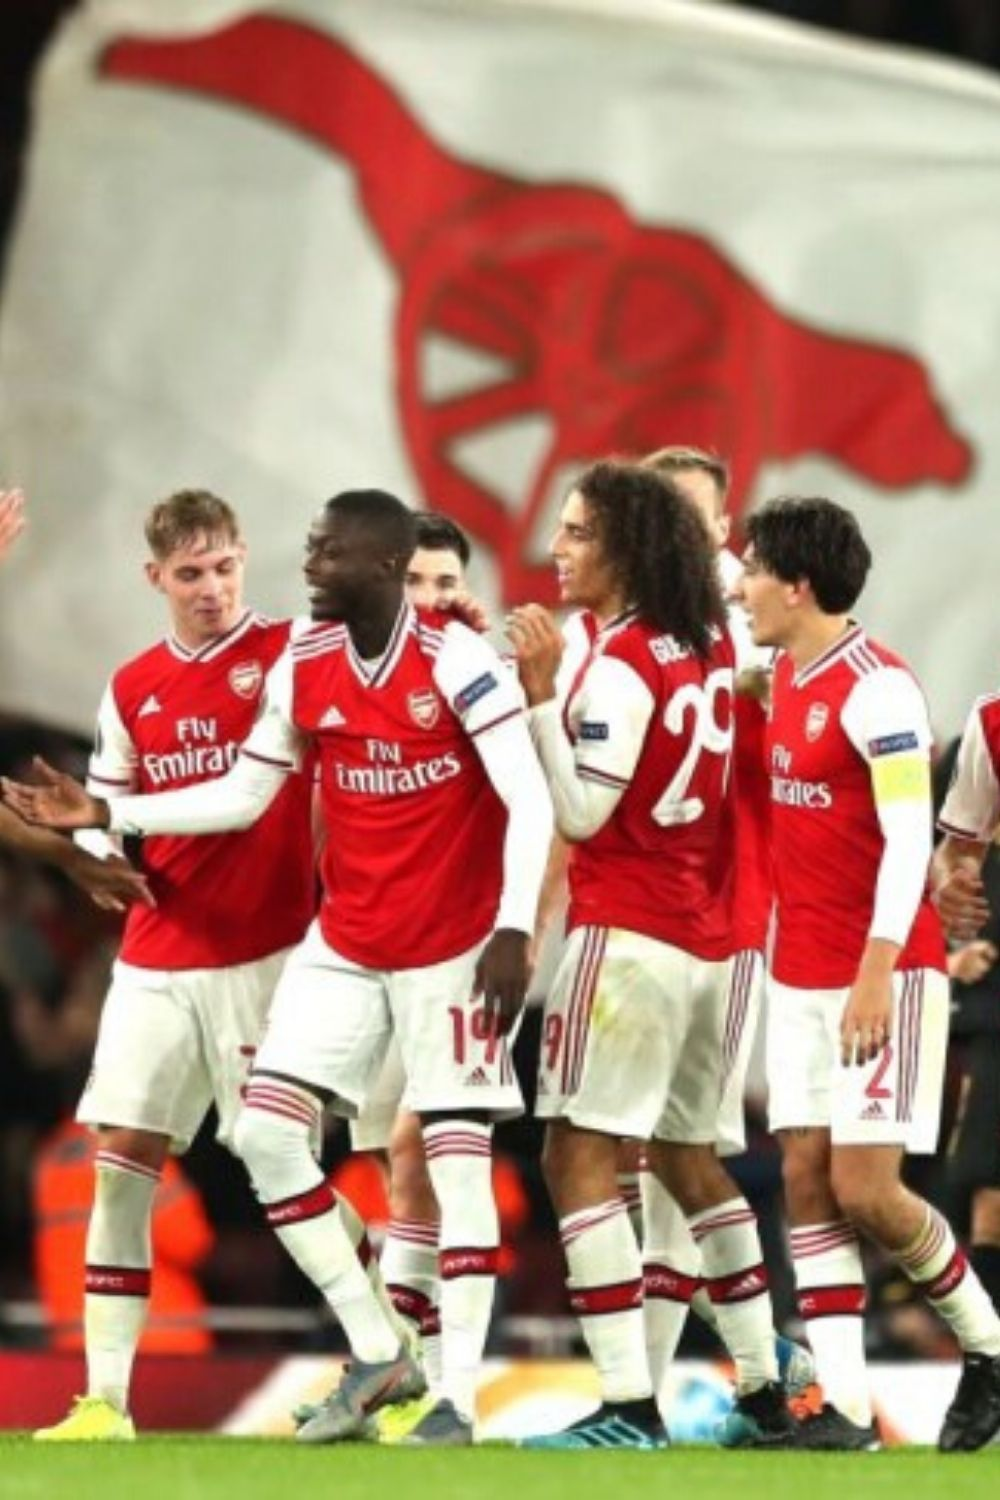 Arsenal is back in action against newcastle utd in premier